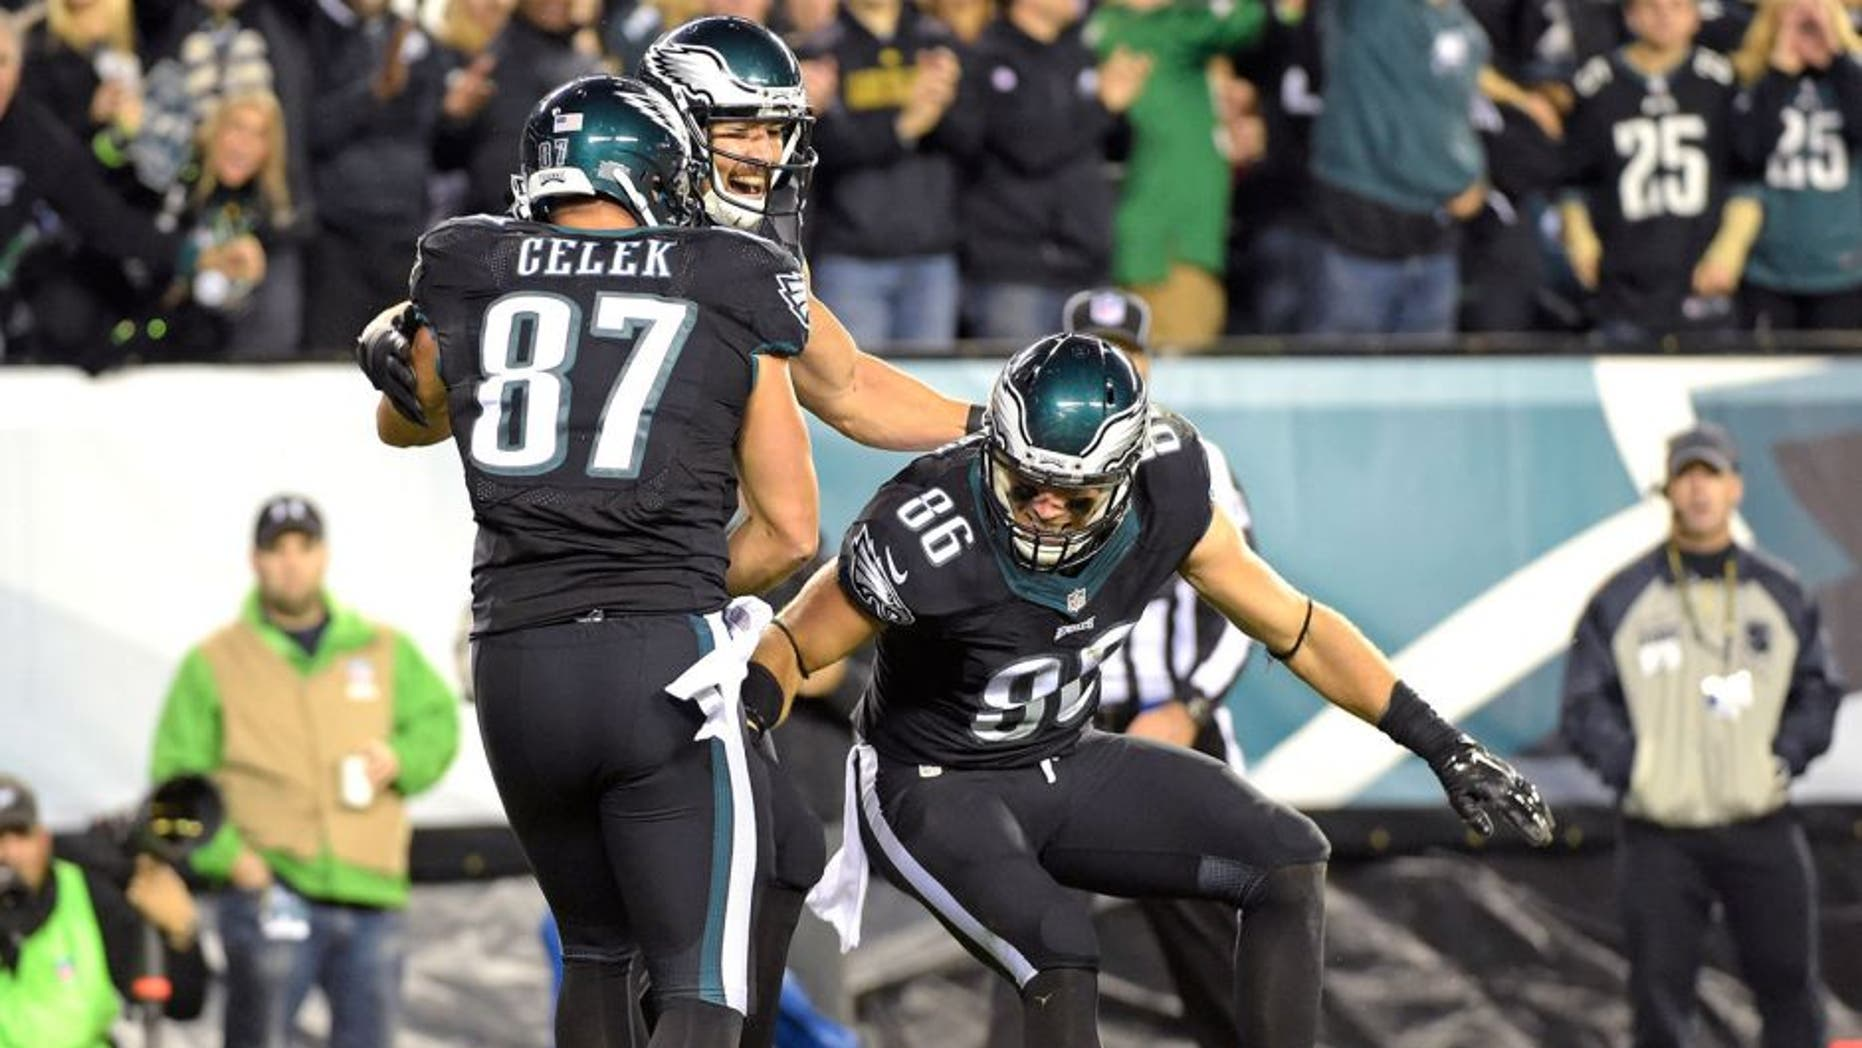 Oct 12, 2014; Philadelphia, PA, USA; Philadelphia Eagles tight end James Casey (85) celebrates his 26-yard touchdown catch with tight end Zach Ertz (86) and tight end Brent Celek (87) against the New York Giants during the second quarter at Lincoln Financial Field. Mandatory Credit: Eric Hartline-USA TODAY Sports